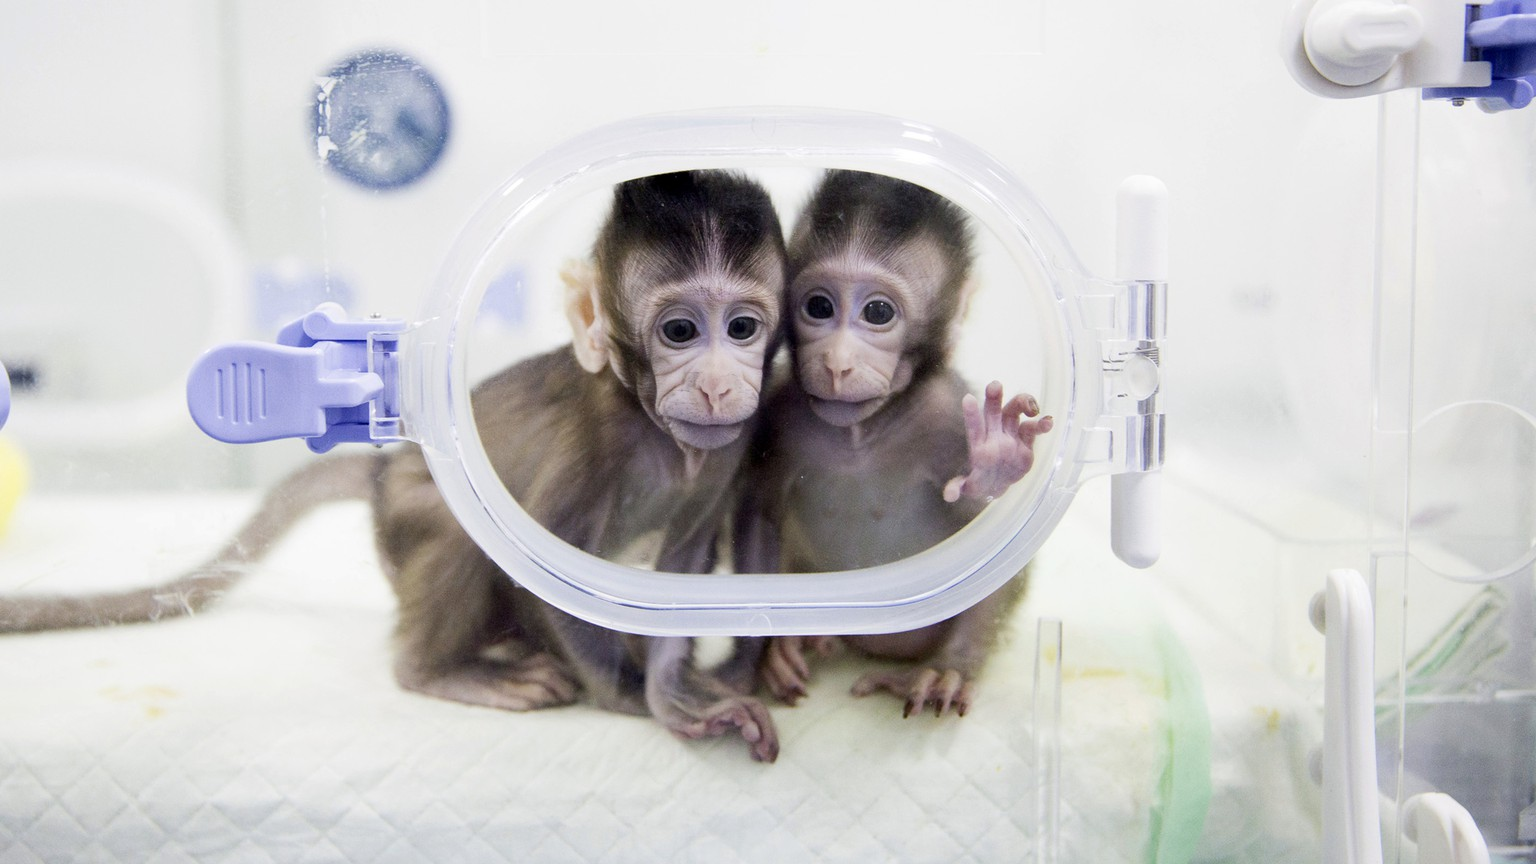 BILDPAKET -- ZUM JAHRESRUECKBLICK 2018 JANUAR, STELLEN WIR IHNEN HEUTE FOLGENDES BILDMATERIAL ZUR VERFUEGUNG -- In this Jan. 22, 2018, photo released by China's Xinhua News Agency, cloned macaques Zhong Zhong and Hua Hua sit in a lab at the non-human primate research facility of the Chinese Academy of Sciences. For the first time, researchers have used the cloning method that produced Dolly the sheep to create two healthy monkeys. That brings science an important step closer to being able to do the same with humans. (Jin Liwang/Xinhua via AP)